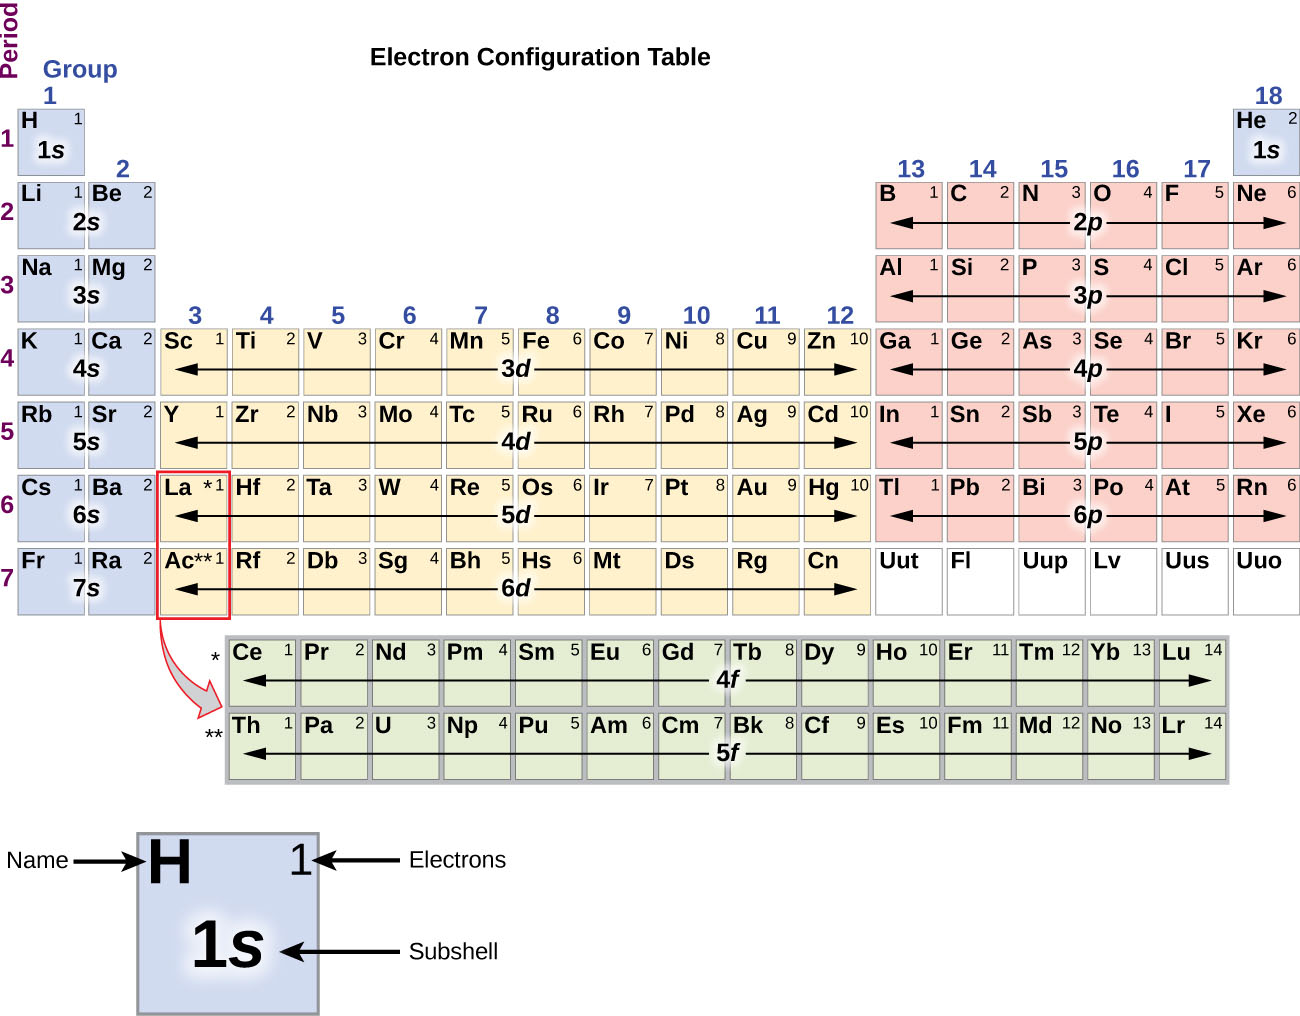 """In this figure, a periodic table is shown that is entitled, """"Electron Configuration Table."""" Beneath the table, a square for the element hydrogen is shown enlarged to provide detail. The element symbol, H, is placed in the upper left corner. In the upper right is the number of electrons, 1. The lower central portion of the element square contains the subshell, 1 s. Helium and elements in groups 1 and 2 are shaded blue. In this region, the rows are labeled 1 s through 7 s moving down the table. Groups 3 through 12 are shaded orange, and the rows are labeled 3 d through 6 d moving down the table. Groups 13 through 18, except helium, are shaded pink and are labeled 2 p through 6 p moving down the table. The lanthanide and actinide series across the bottom of the table are shaded grey and are labeled 4 f and 5 f respectively."""